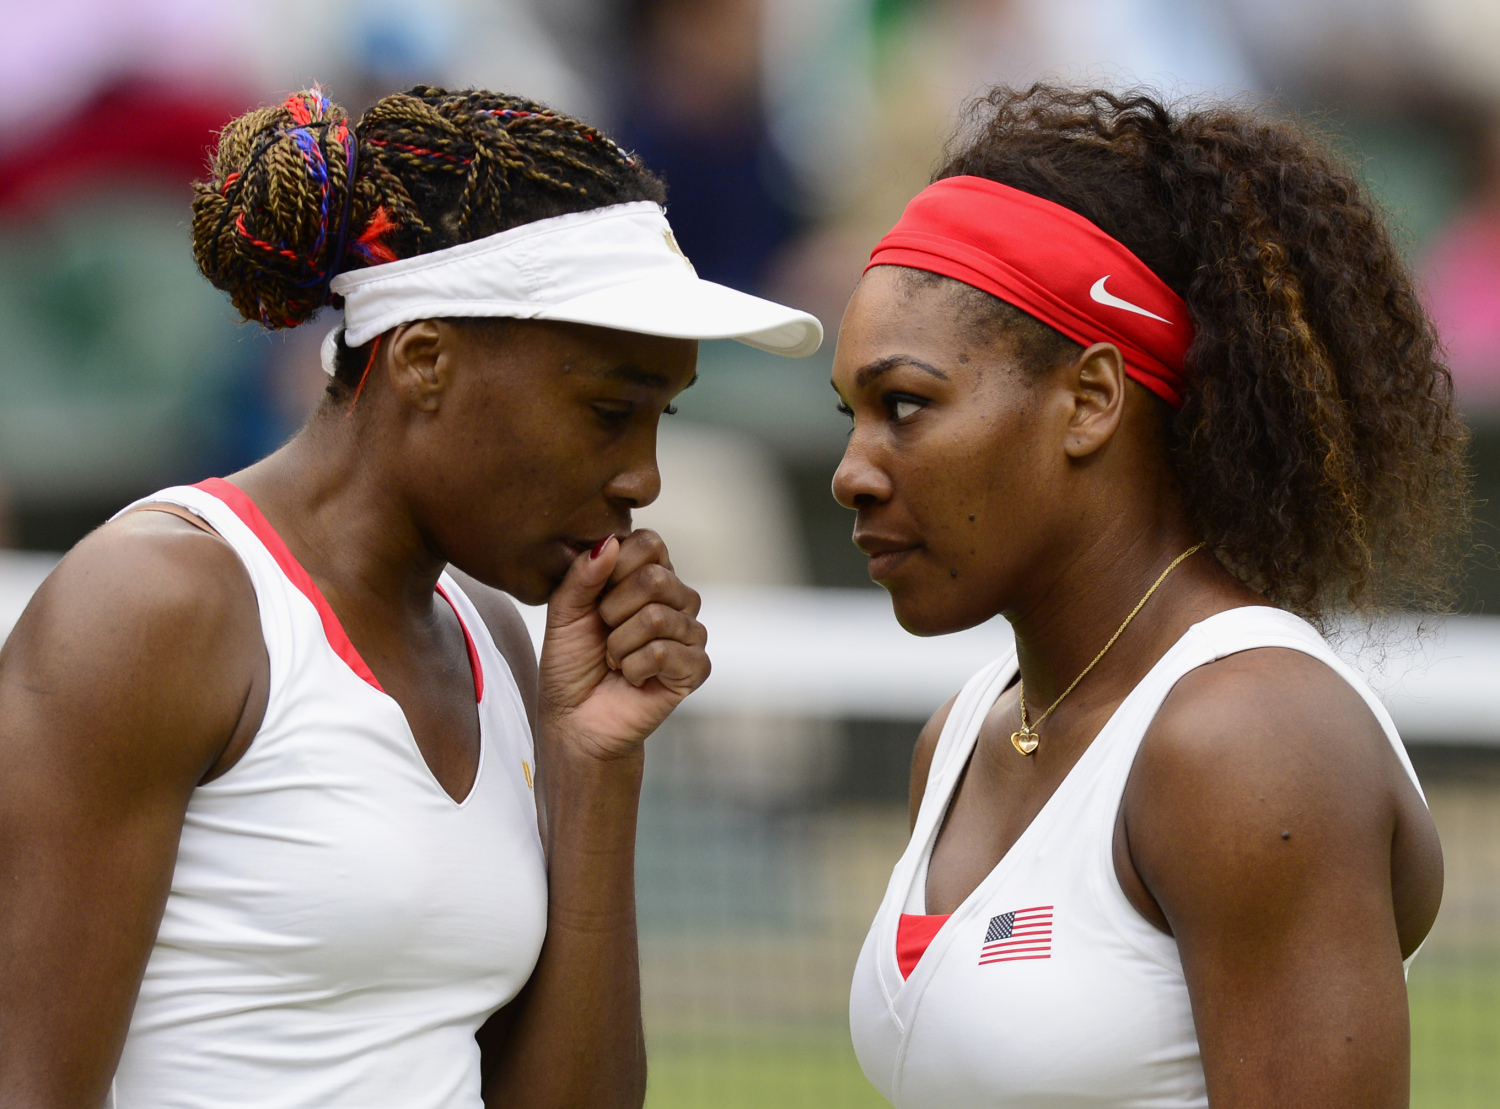 lovely tennis williams sisters playing free computer hd download photos